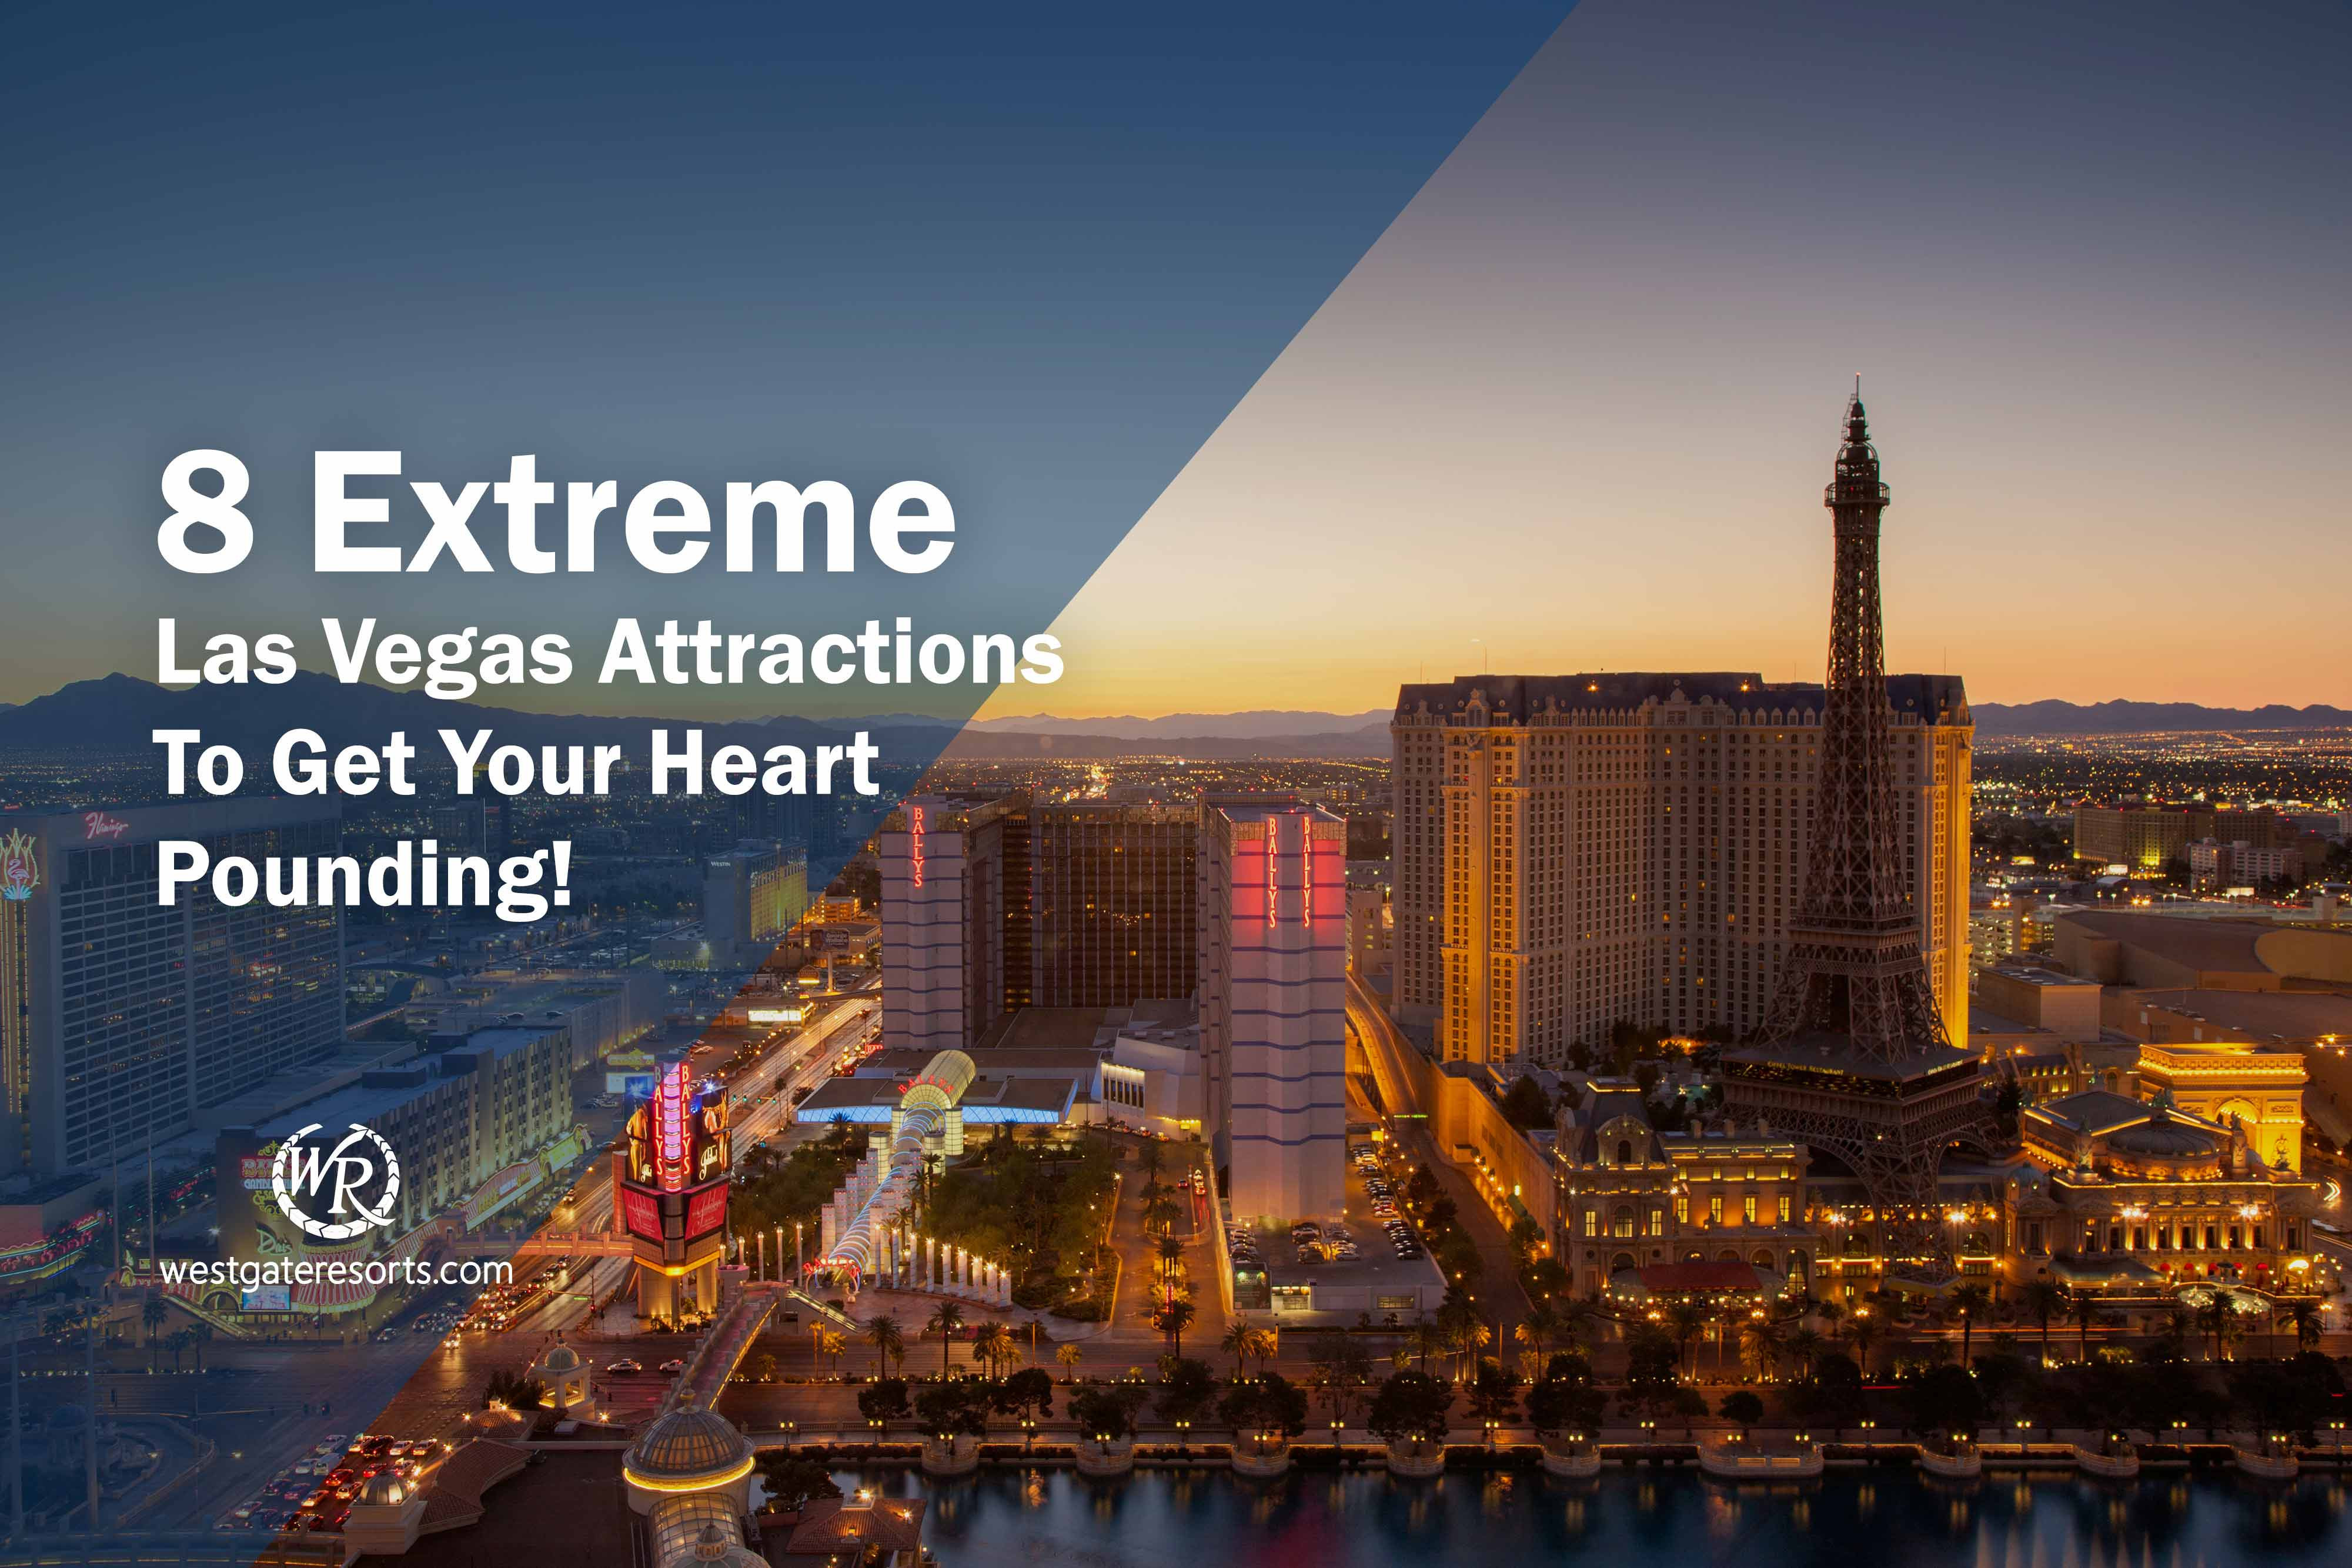 8 Extreme Las Vegas Attractions To Get Your Heart Pounding!